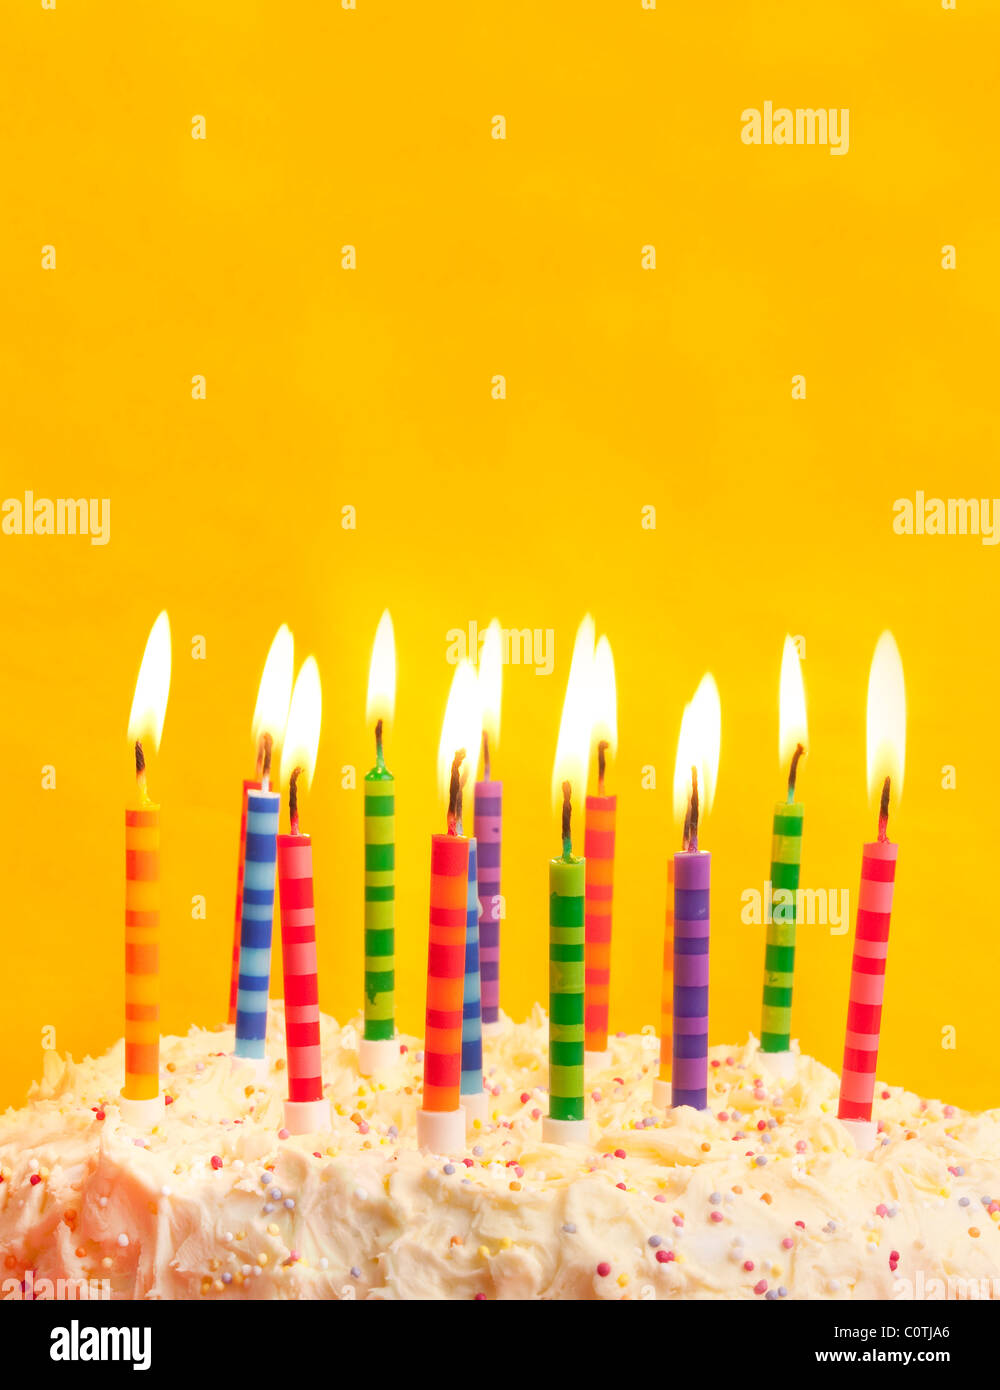 Happy Birthday Cake Shot On A Yellow Background With Candles And